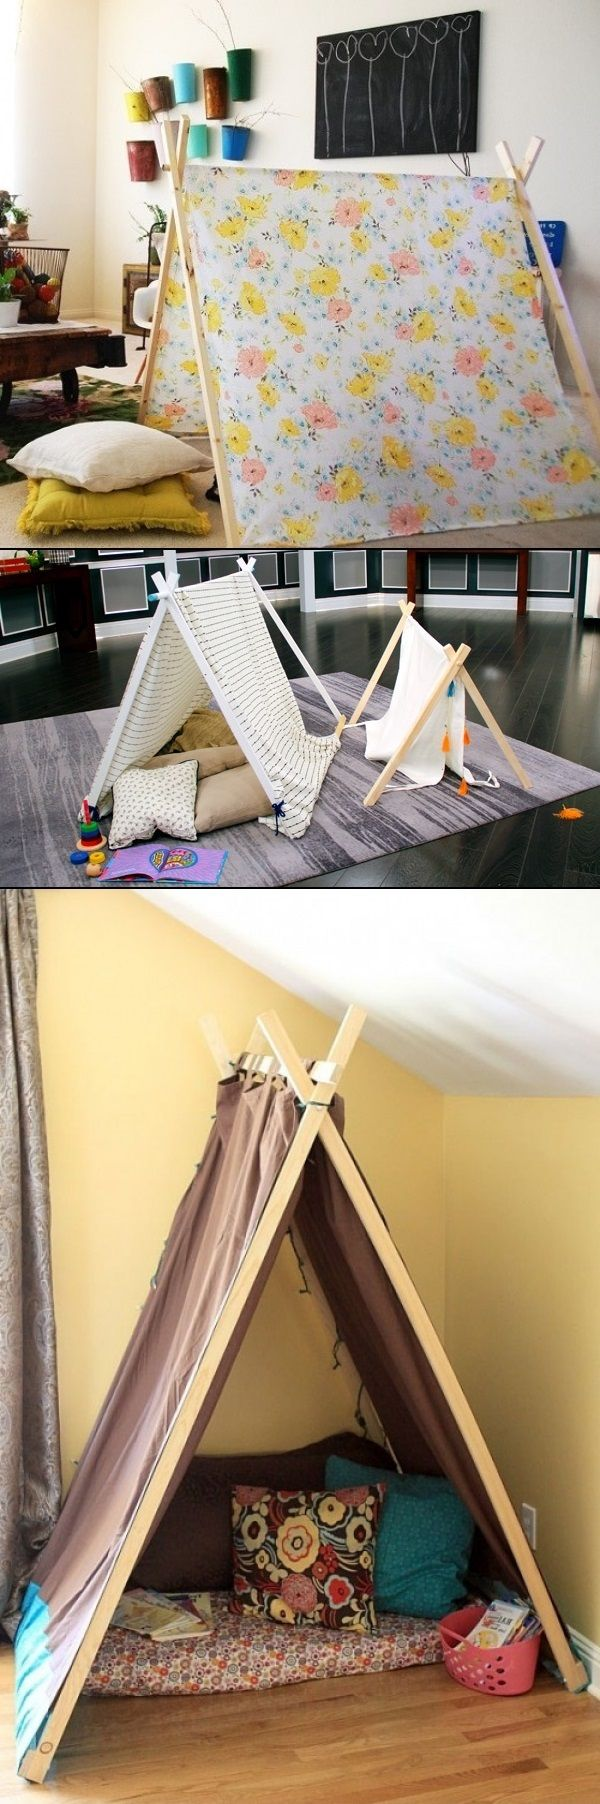 I'd love to make one of these for the boys. They are always wanting one to play in. And this one could be left up!